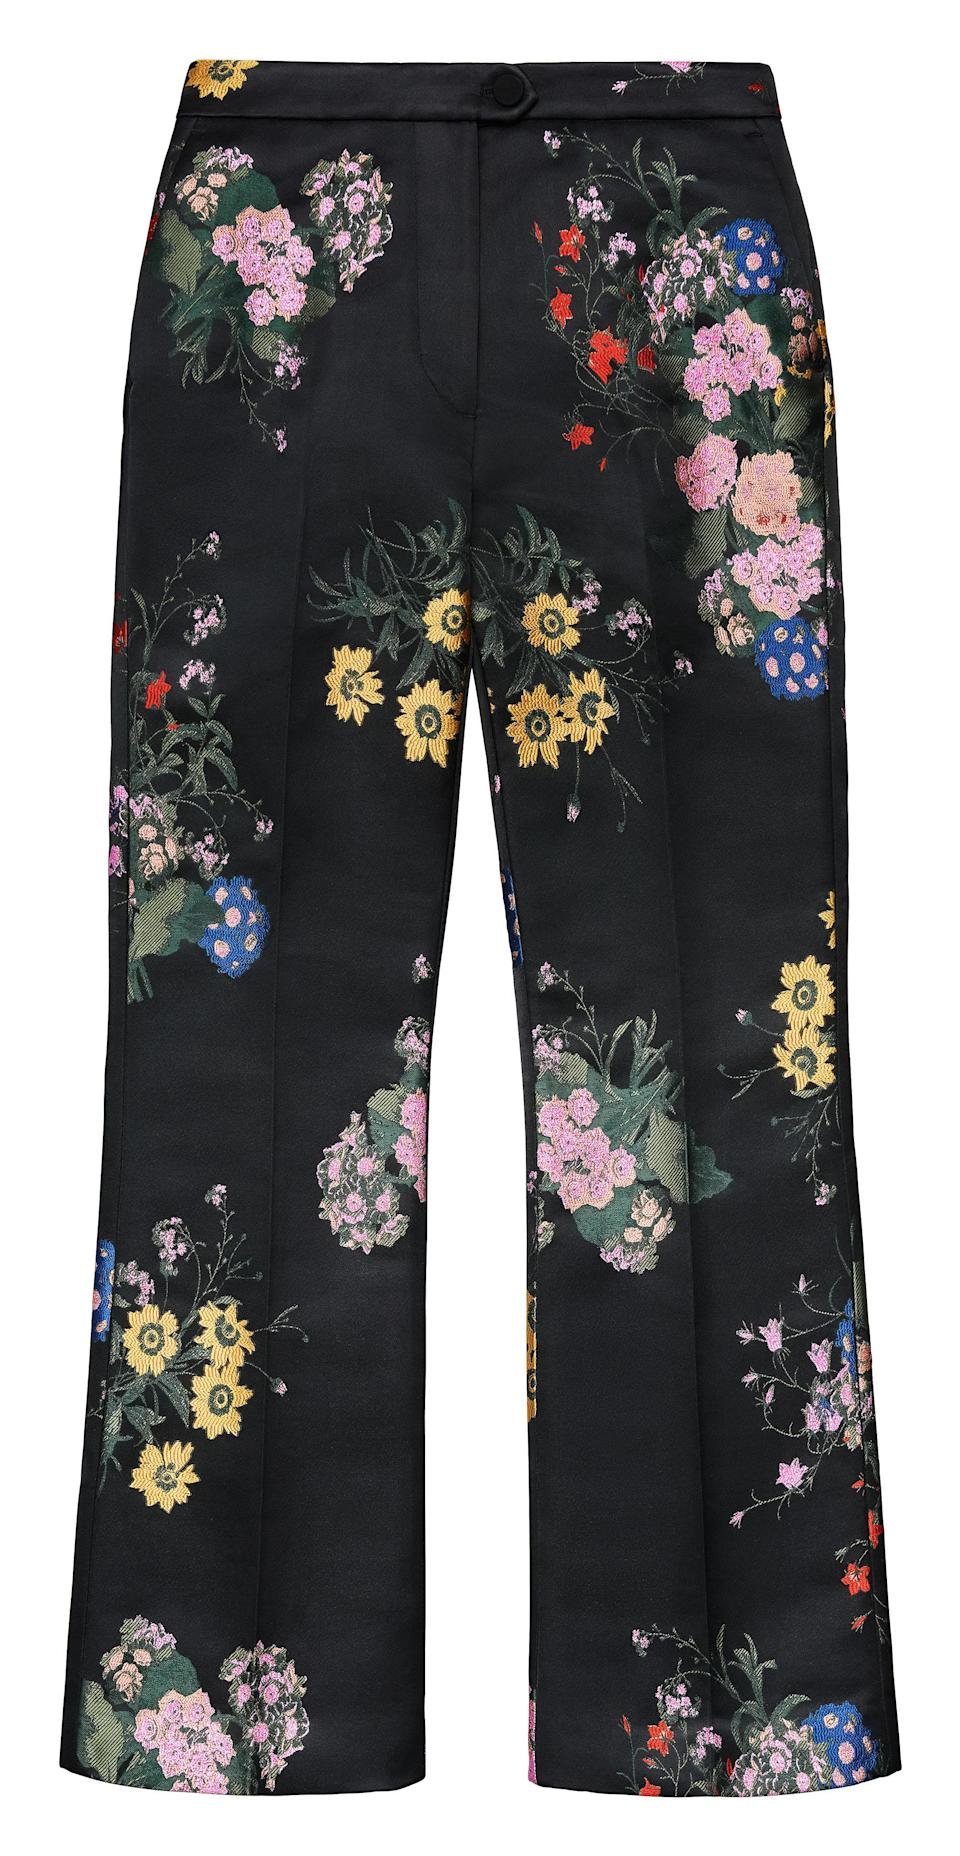 """<p>You can't possibly buy the blazer and not the co-ordinating trousers, right? <em><a rel=""""nofollow noopener"""" href=""""http://www2.hm.com/en_gb/index.html"""" target=""""_blank"""" data-ylk=""""slk:H&M"""" class=""""link rapid-noclick-resp"""">H&M</a>, £79.99</em> </p>"""